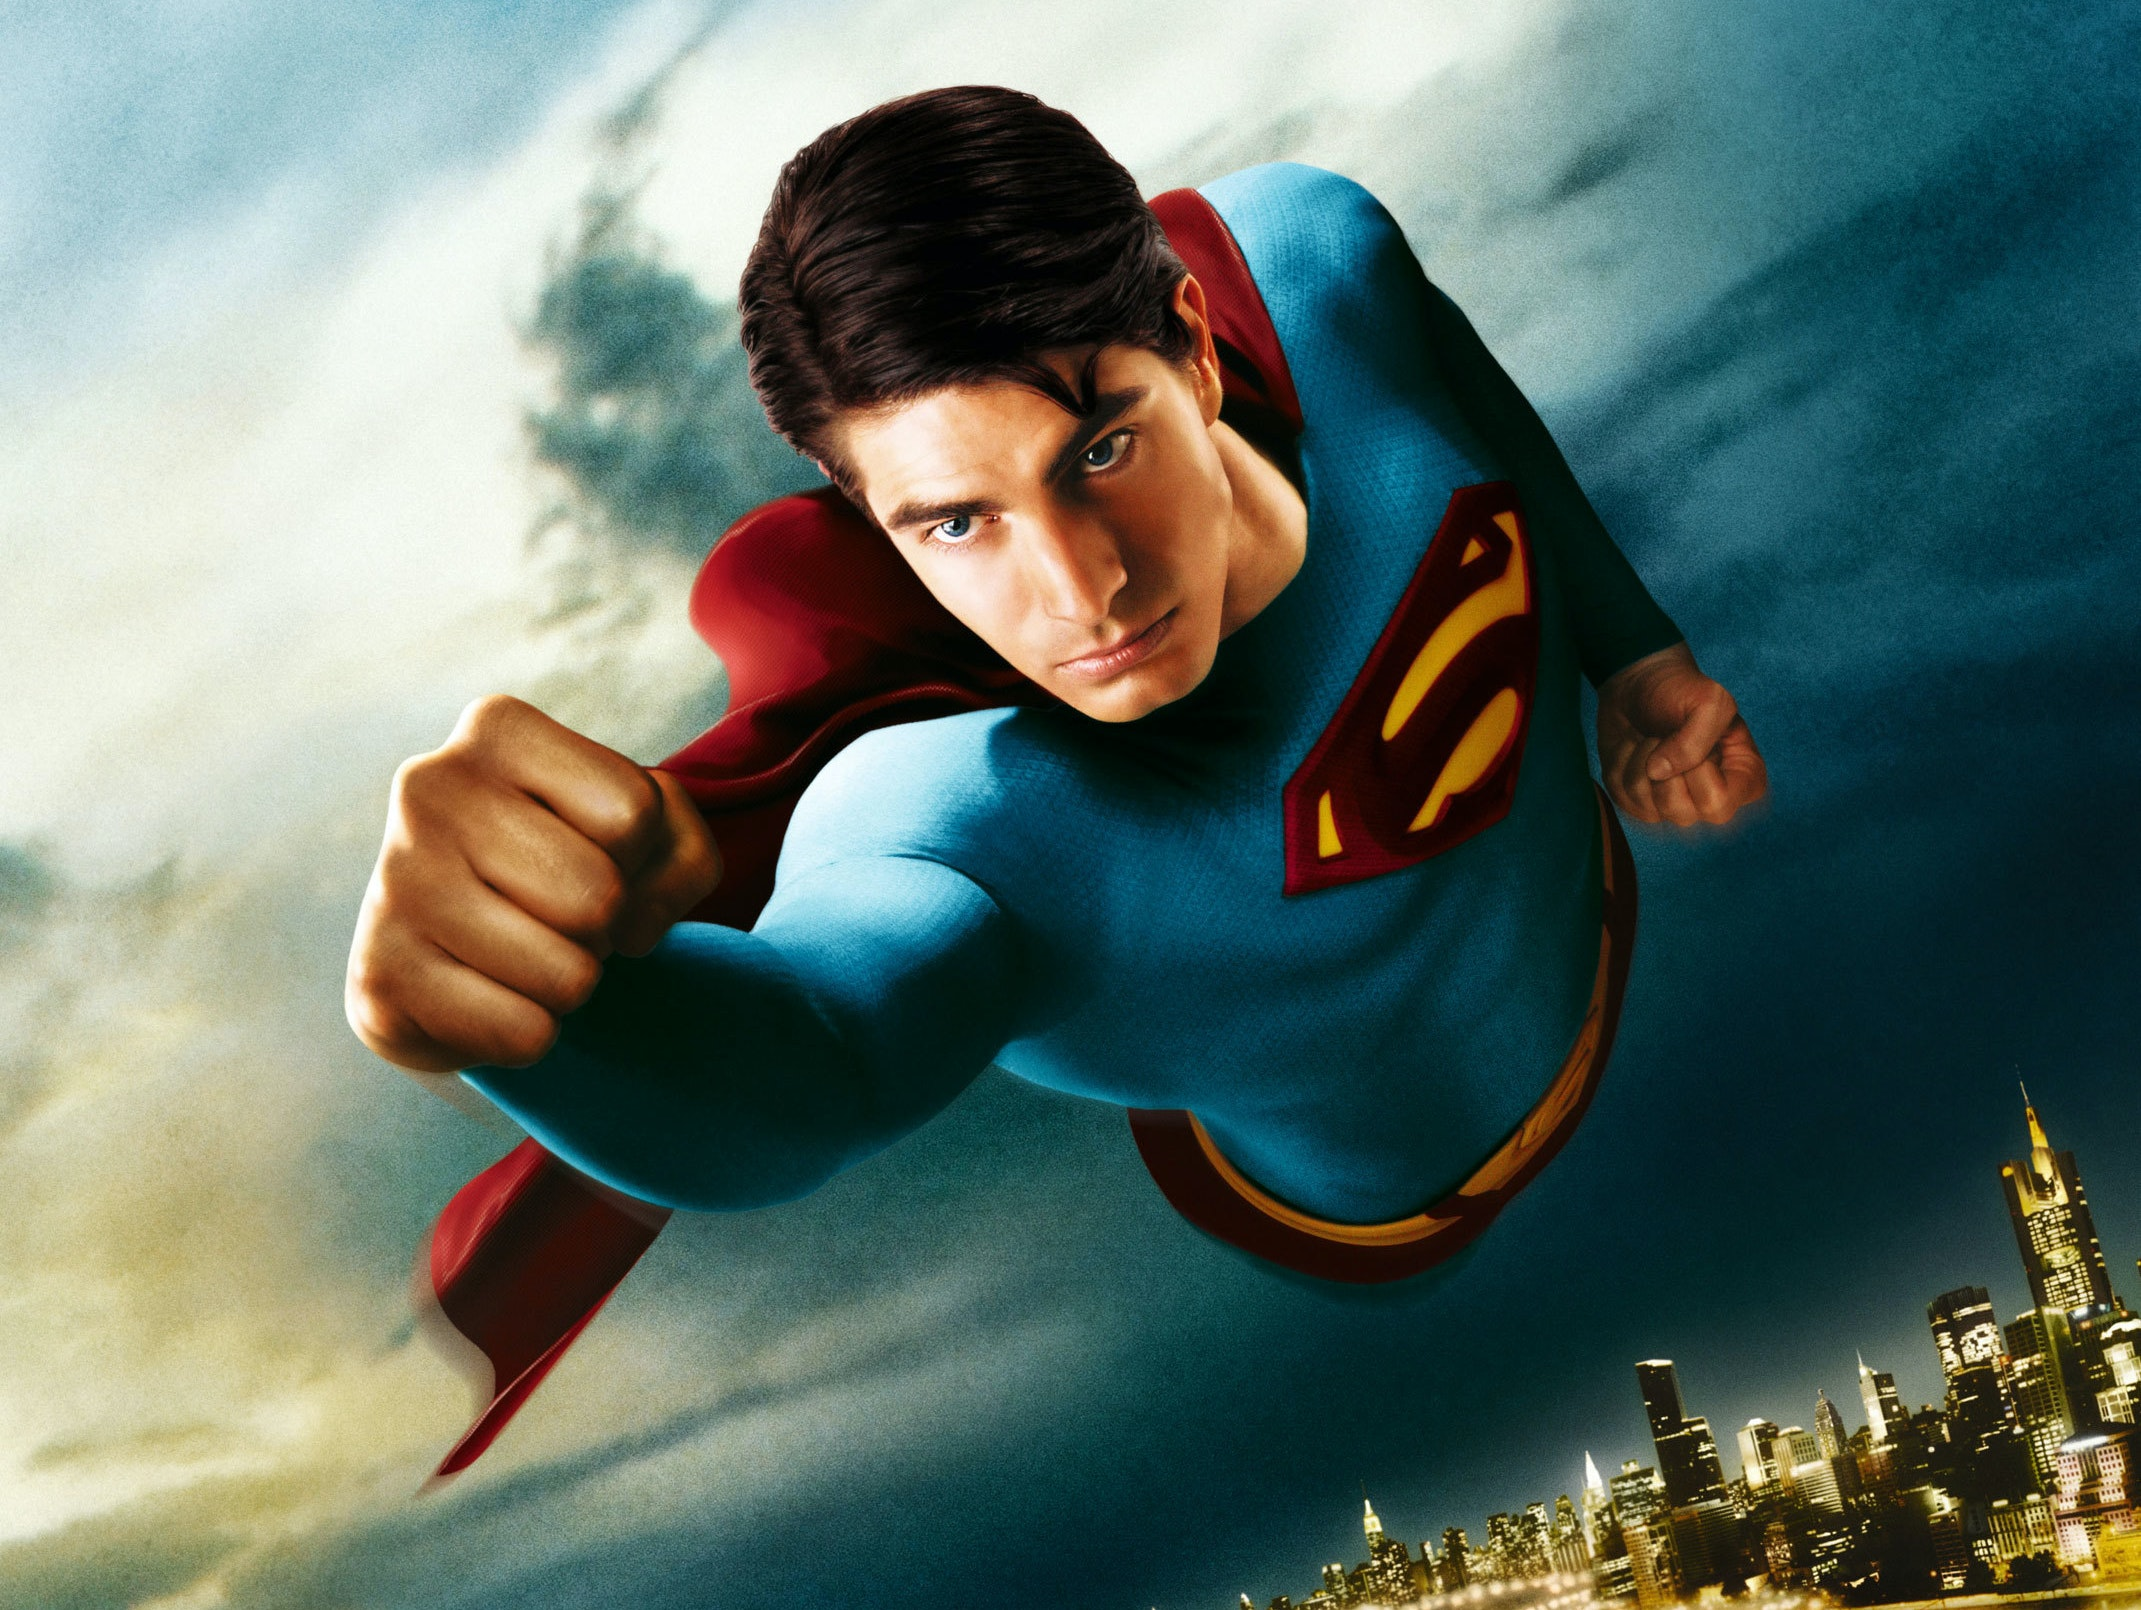 'Legends of Tomorrow' Made the Superman Joke Fans Waited For